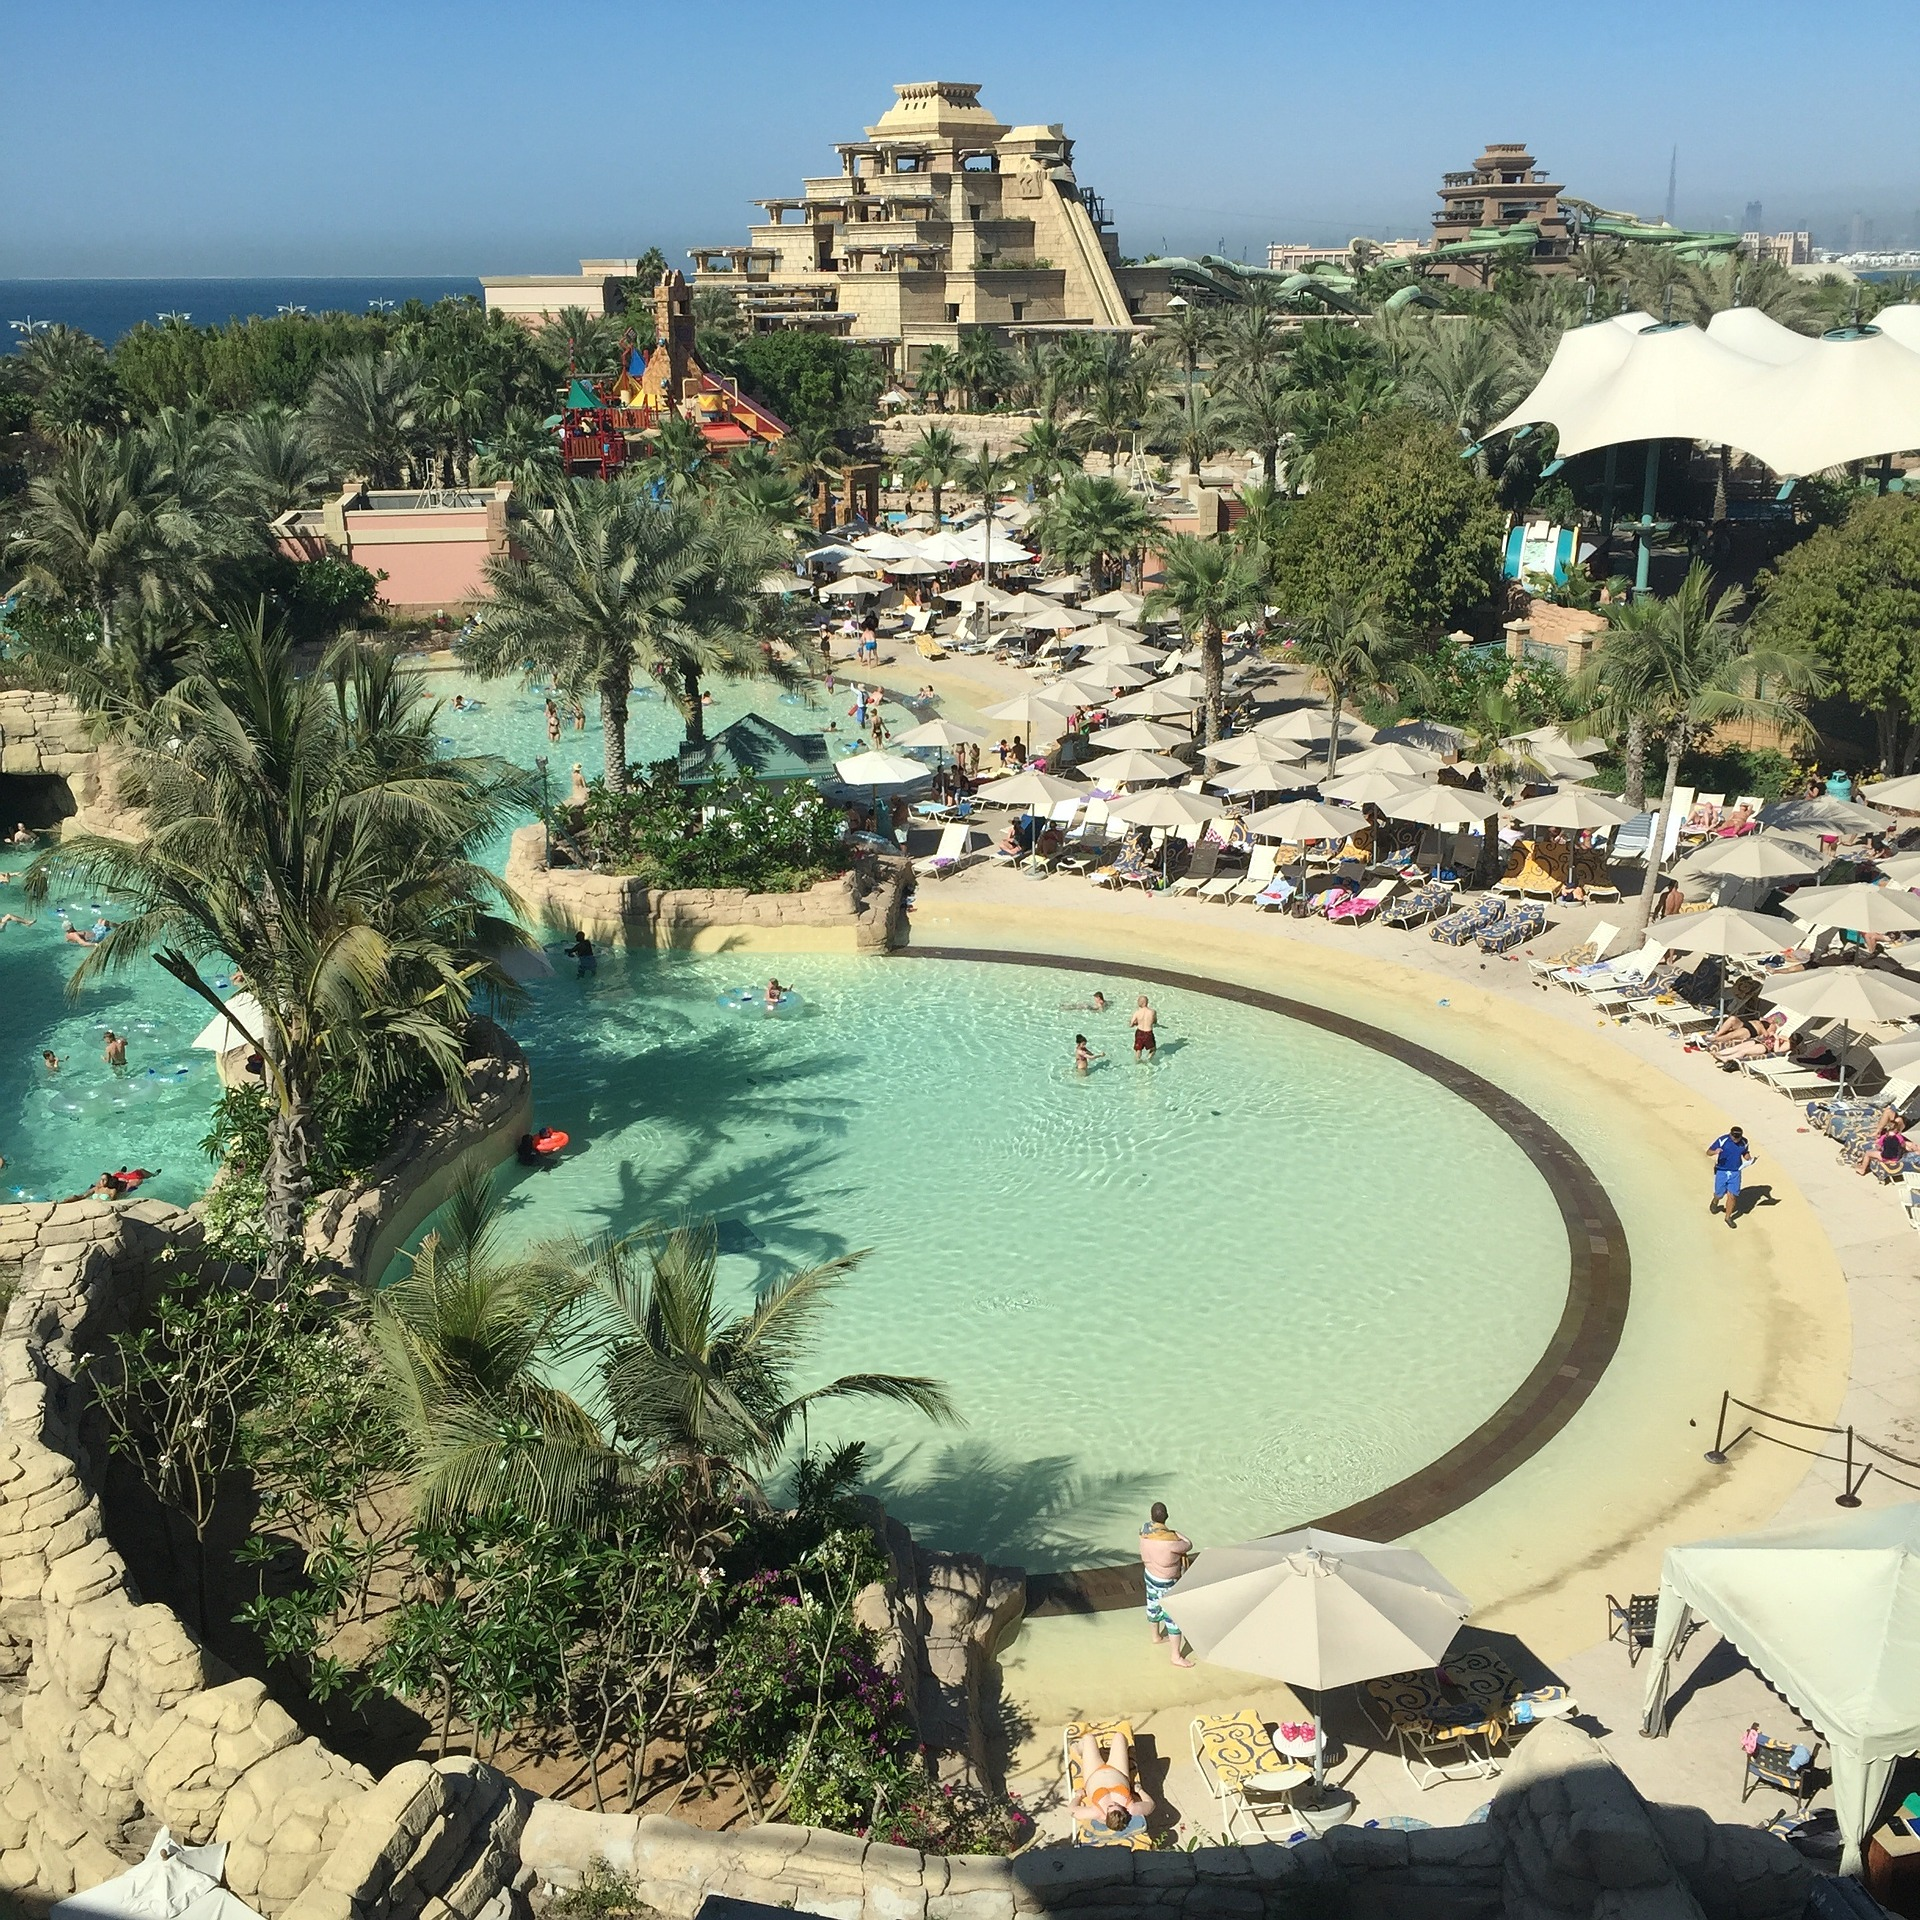 Aquaventure Waterpark At Atlantis